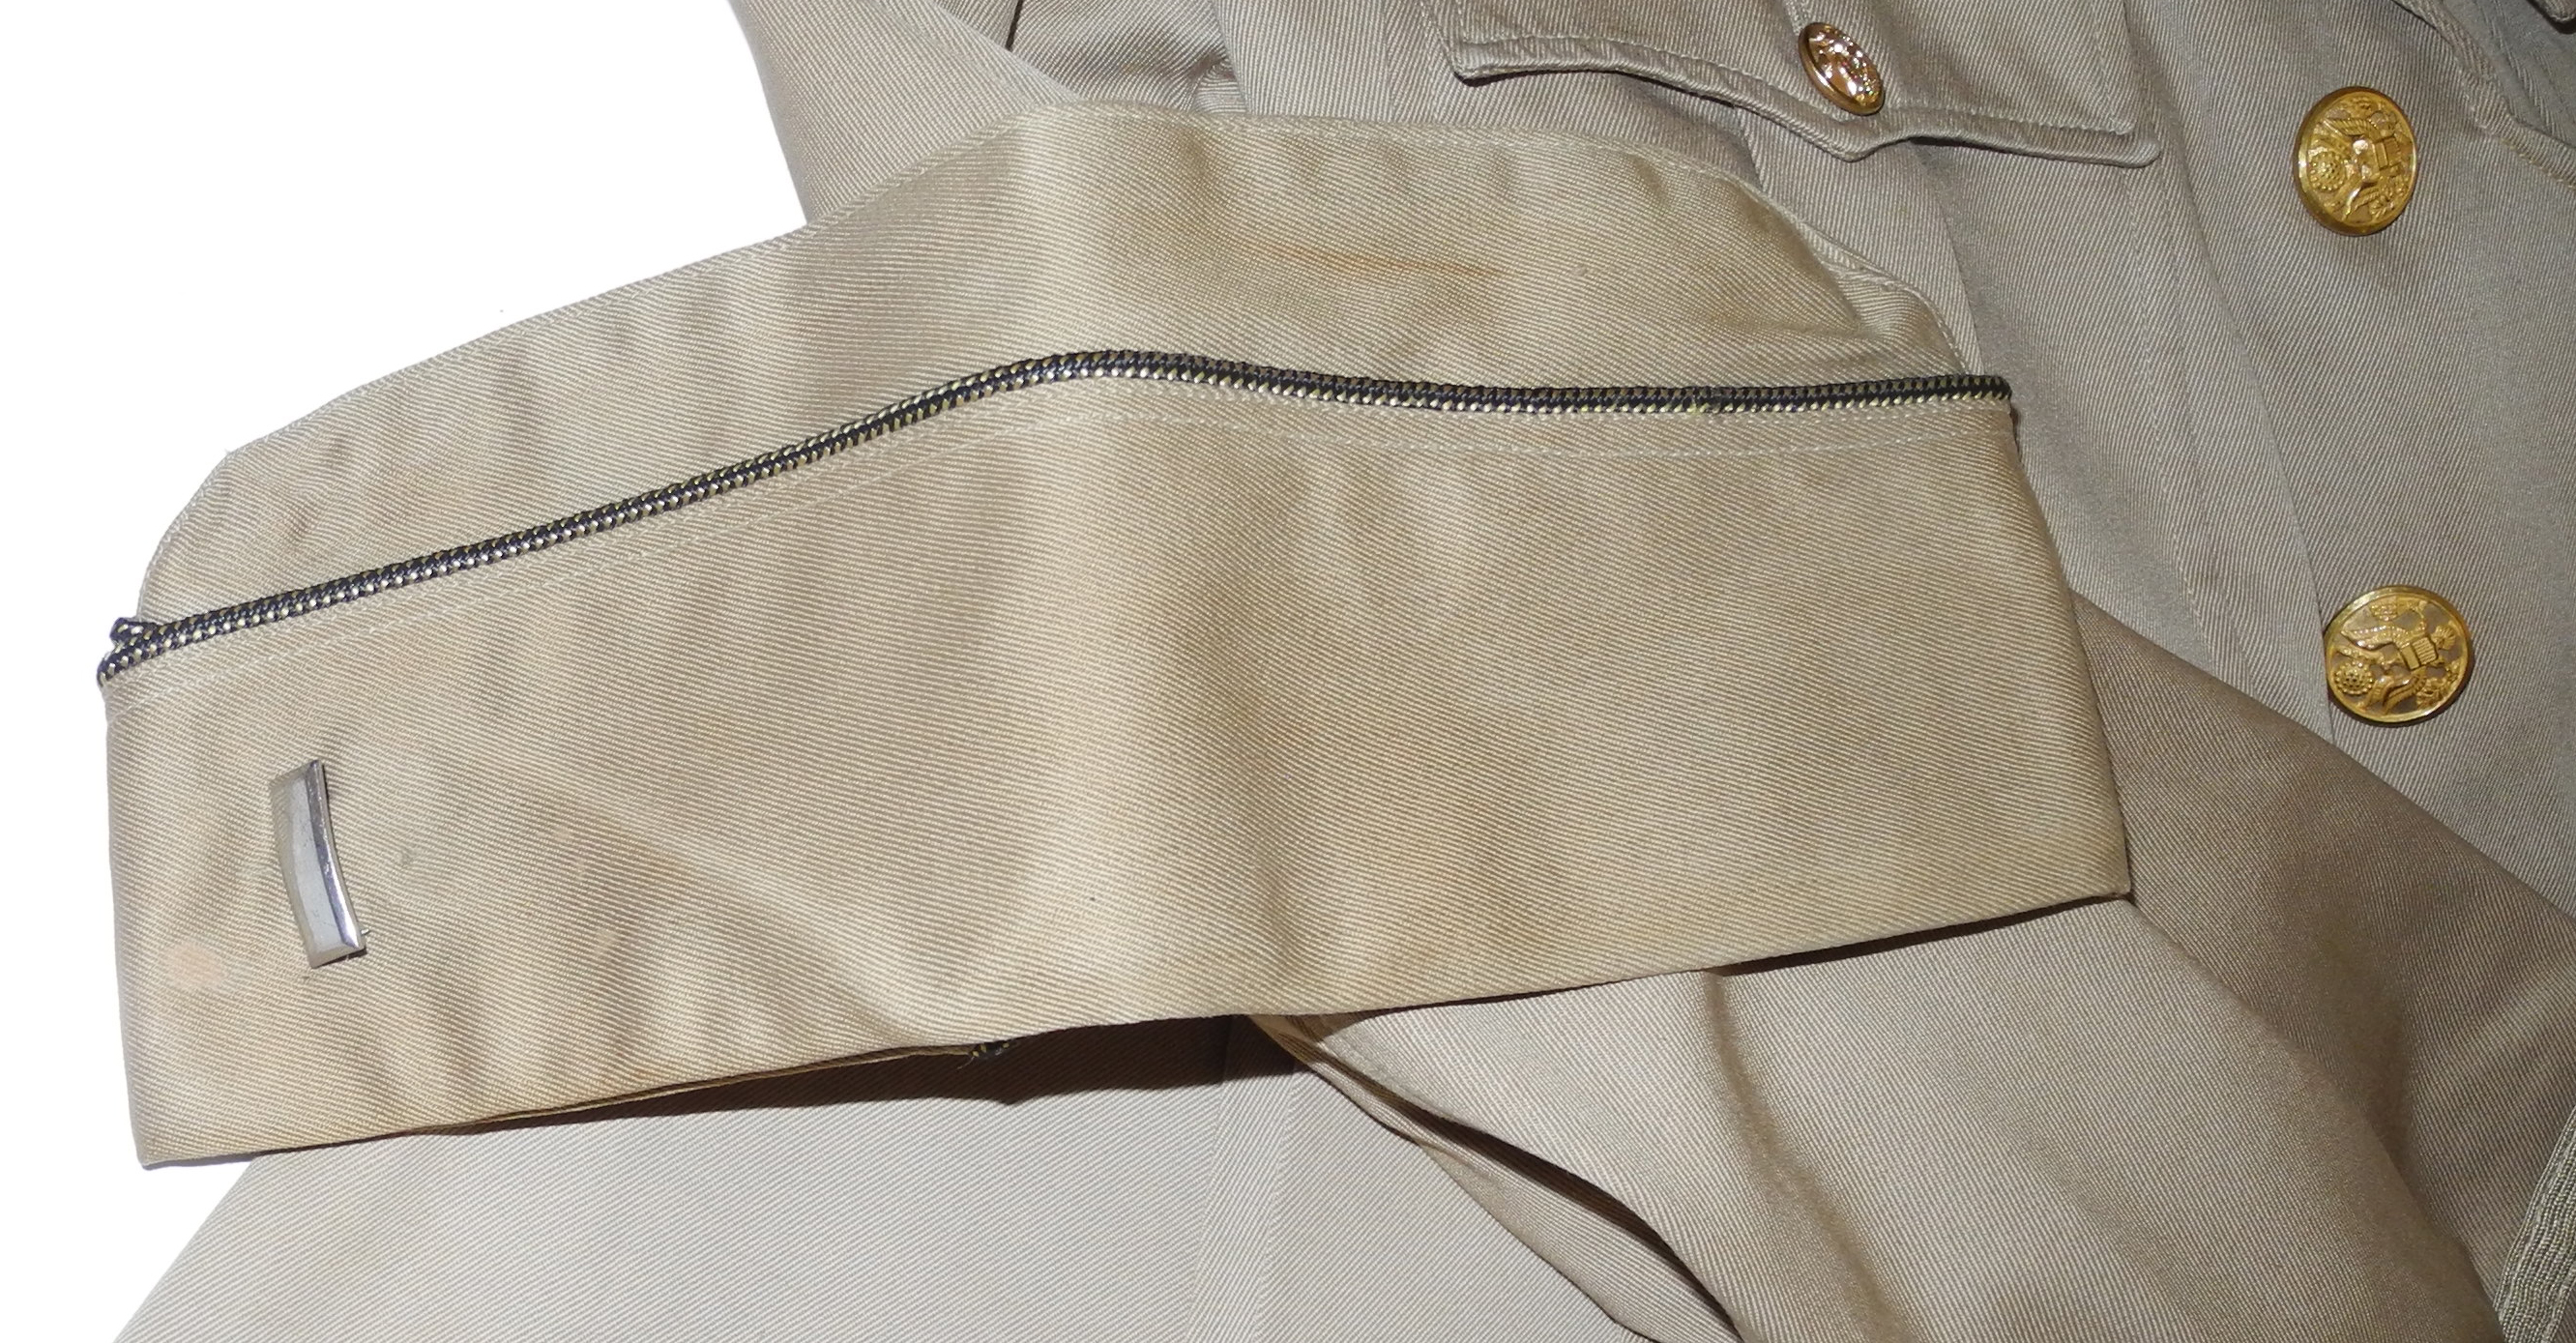 Complete AAF summer uniform: sidecap, 4-pocket tunic and trousers7